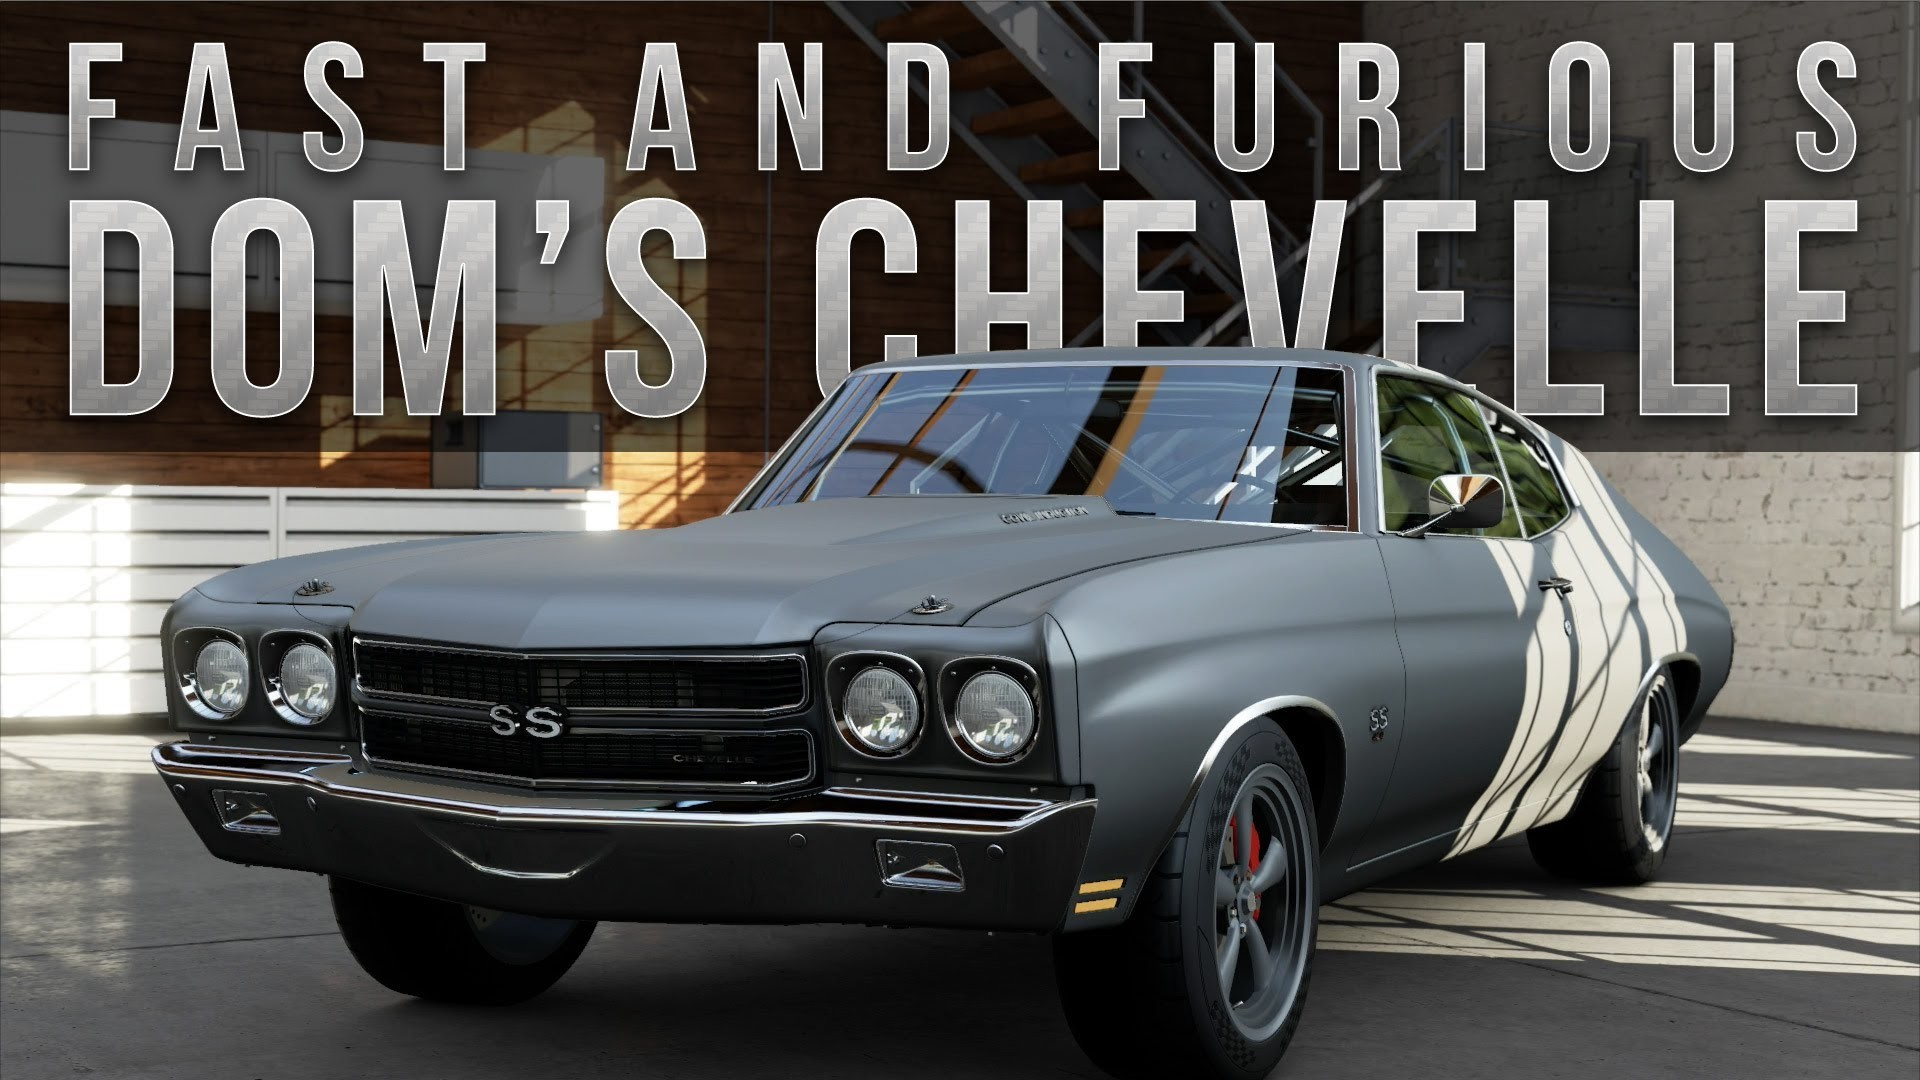 Chevrolet Chevelle SS Fast and Furious